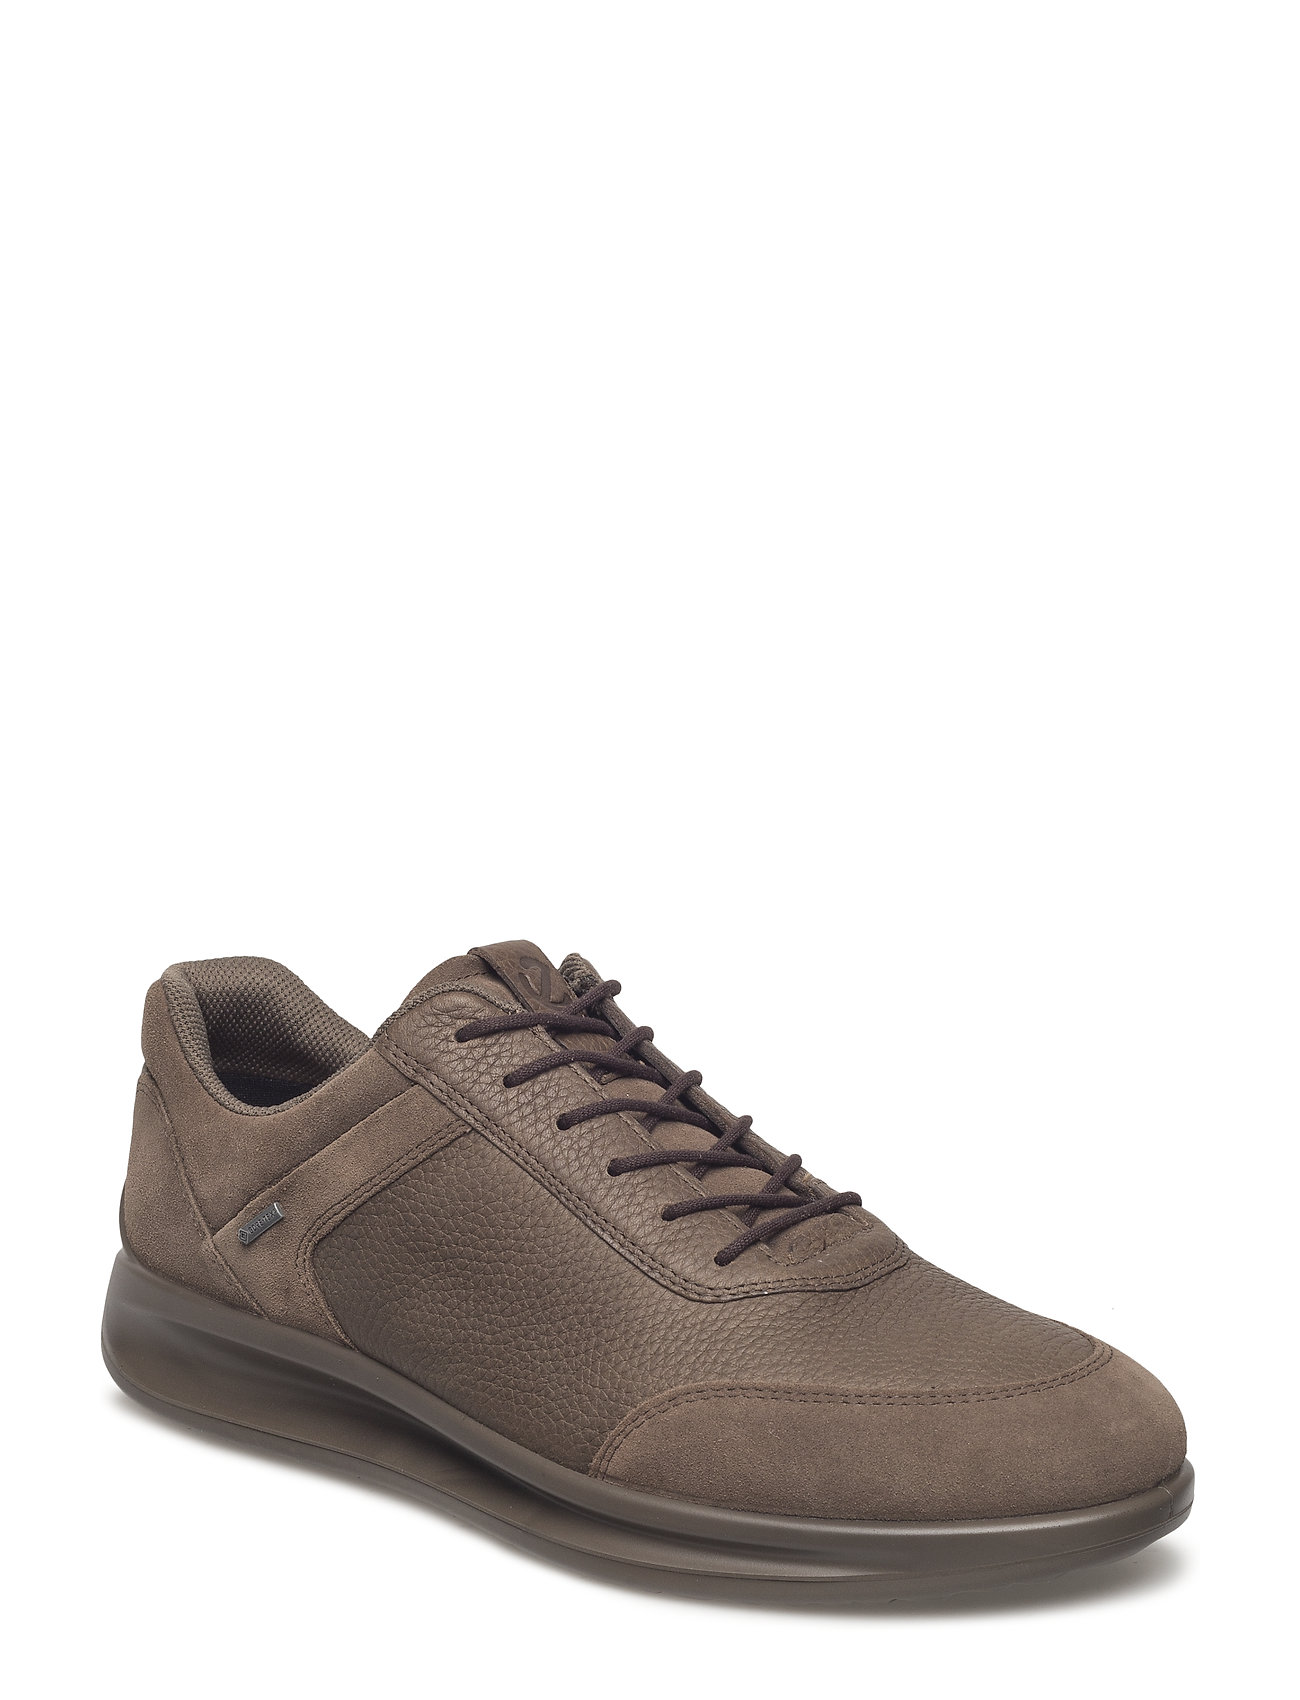 Image of Aquet Shoes Business Laced Shoes Brun ECCO (3191653739)